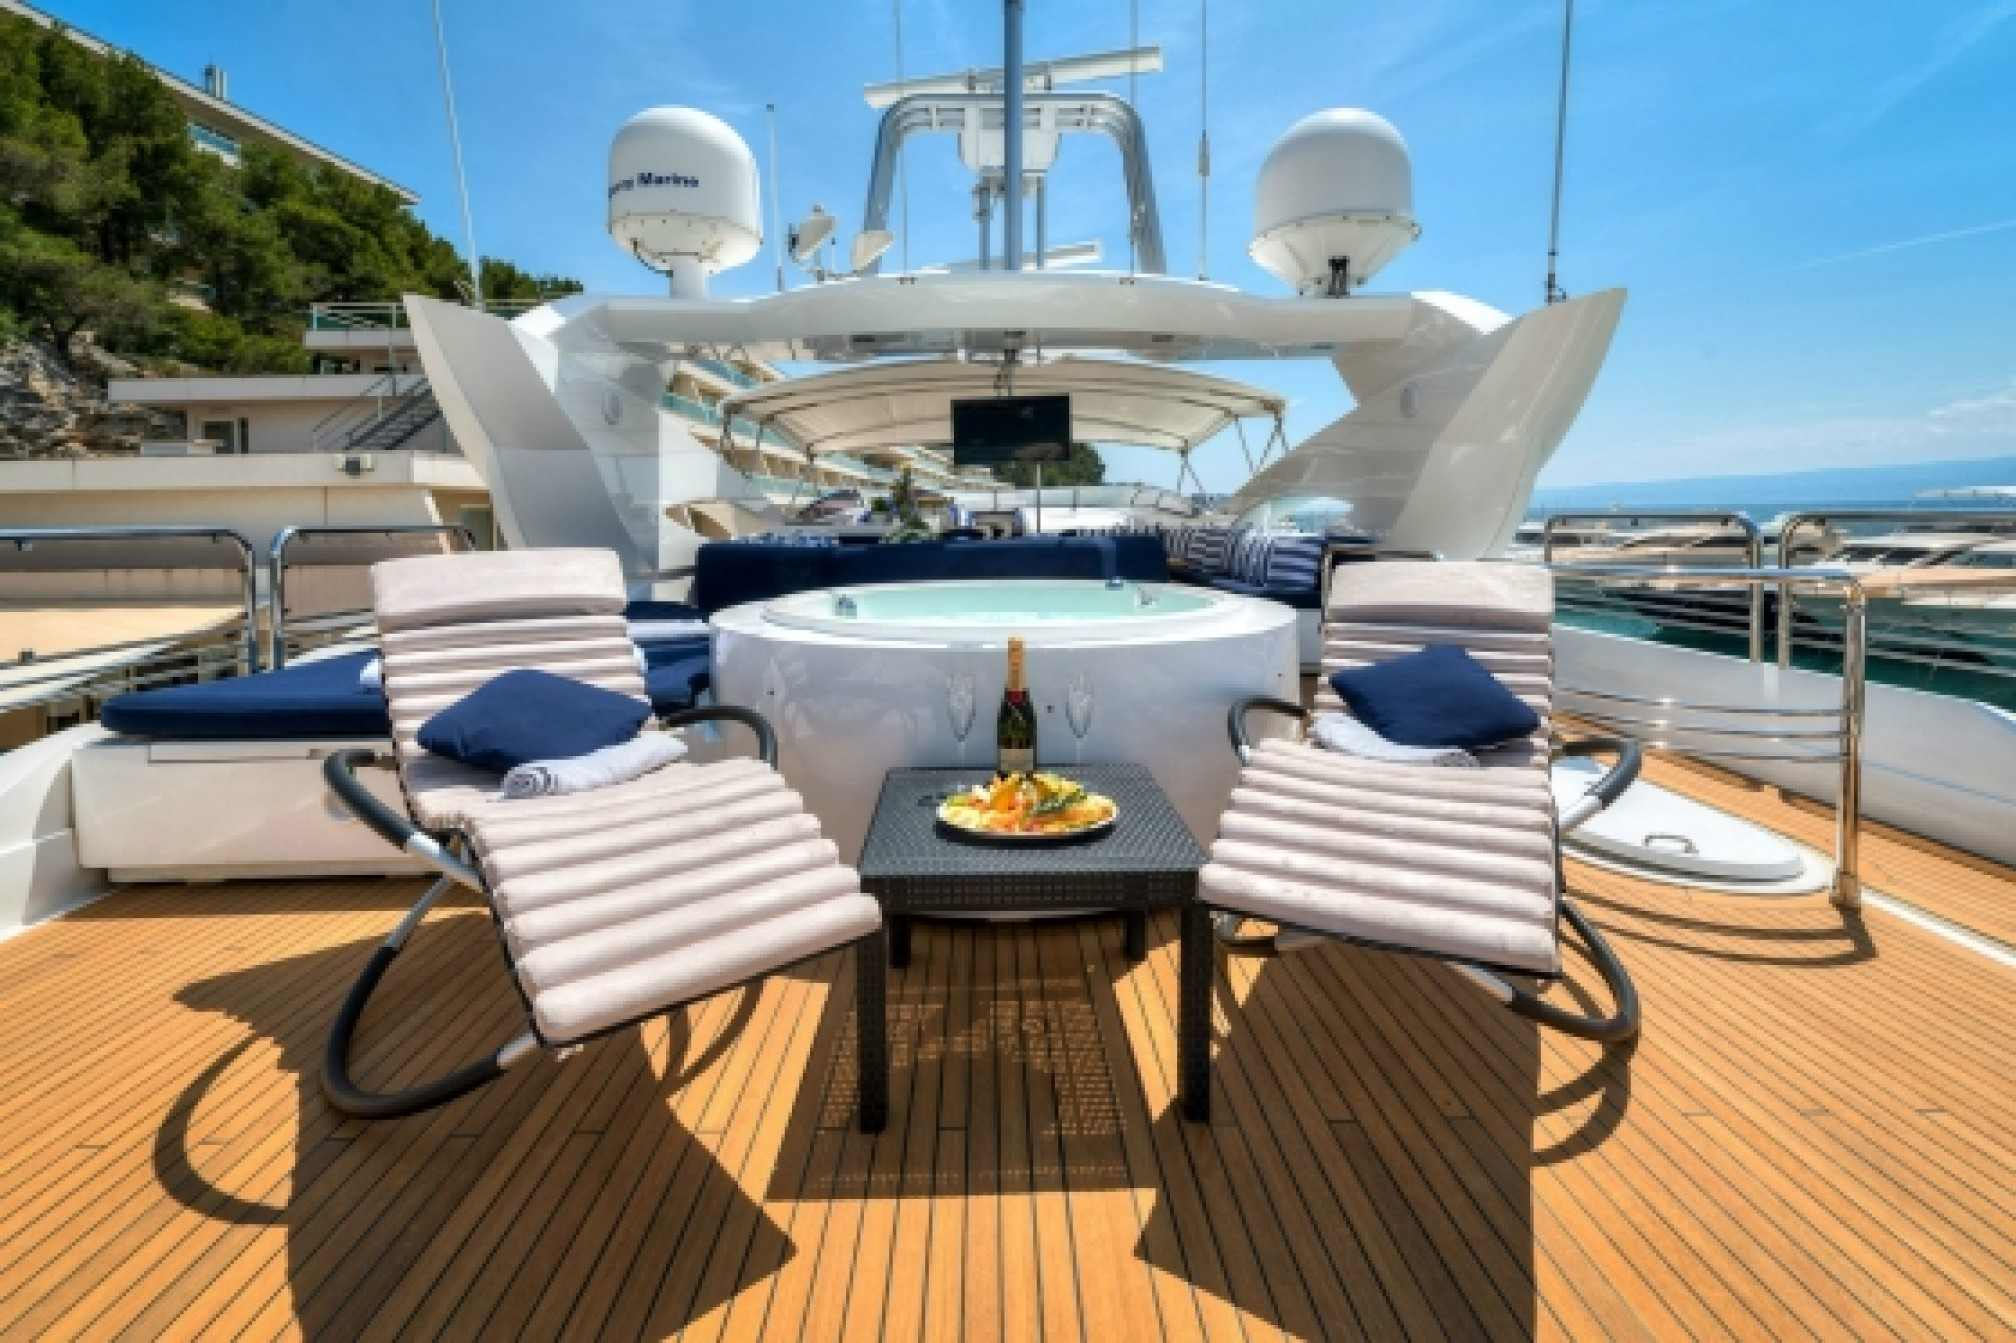 Sunseeker 105 charter yacht outdoors